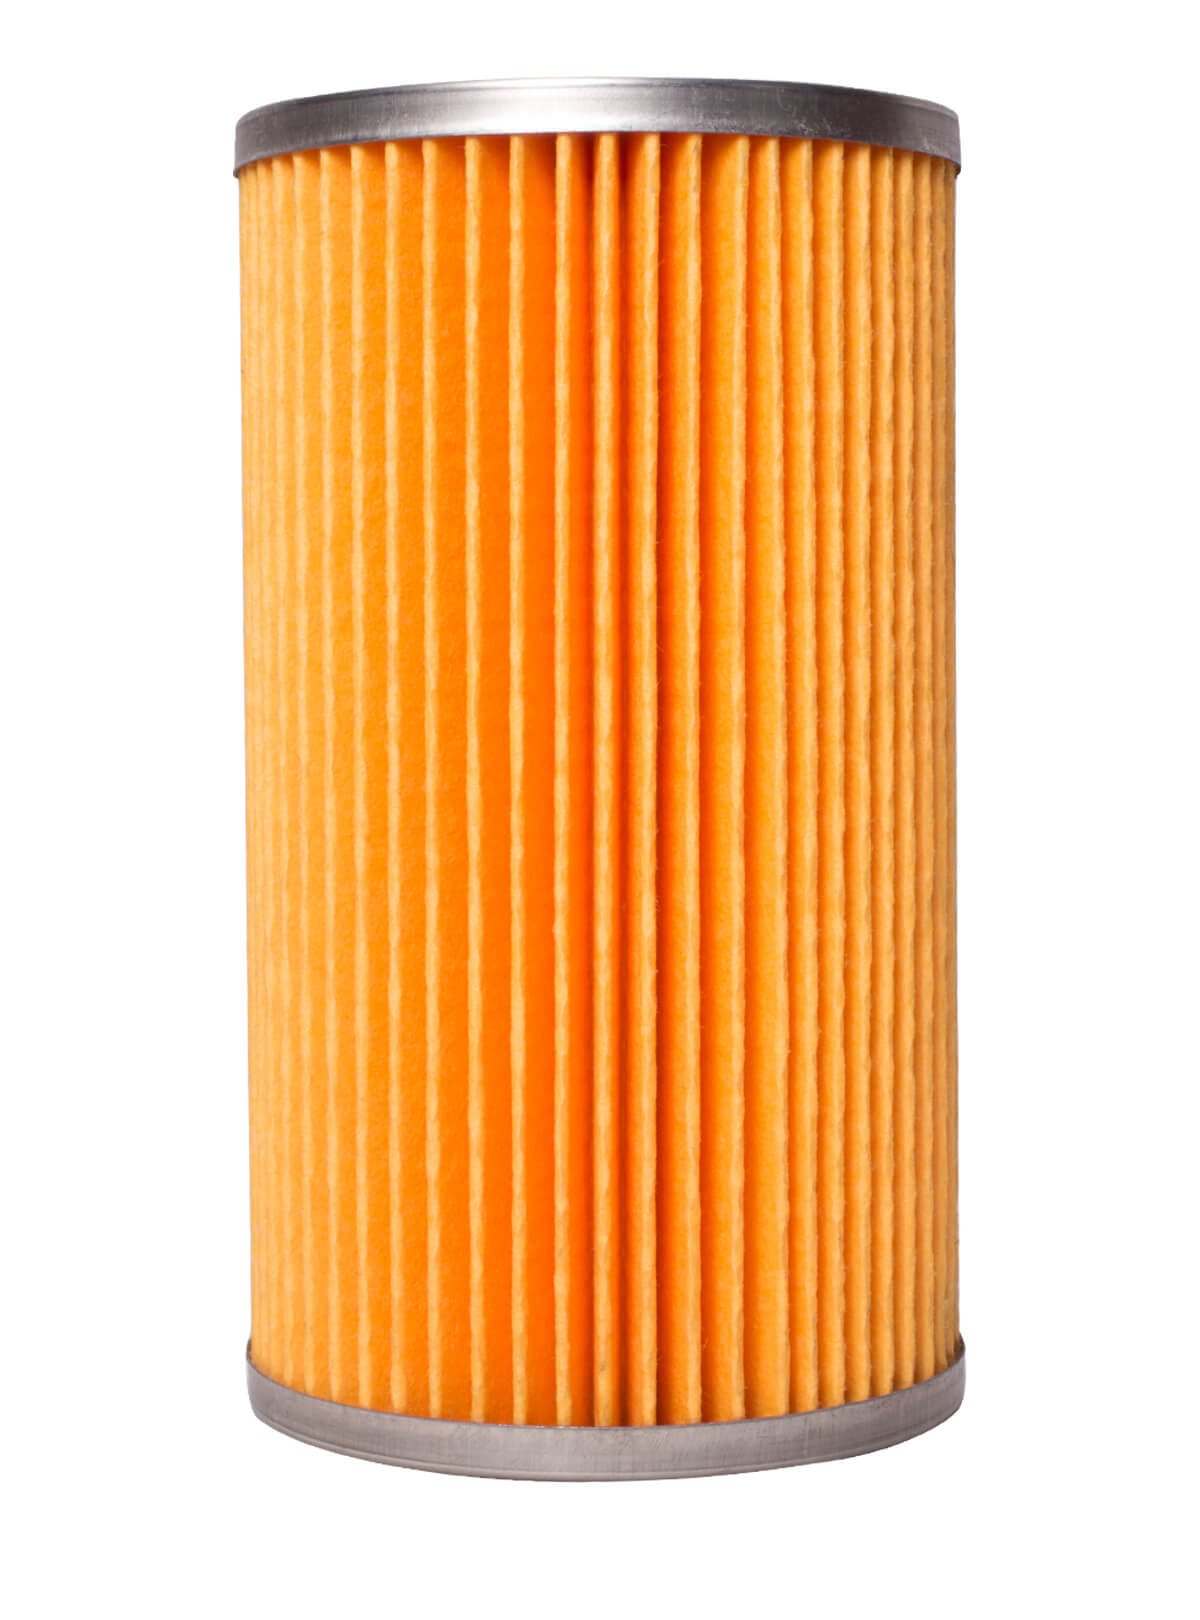 Oil Filter (ROSA, CANTER)